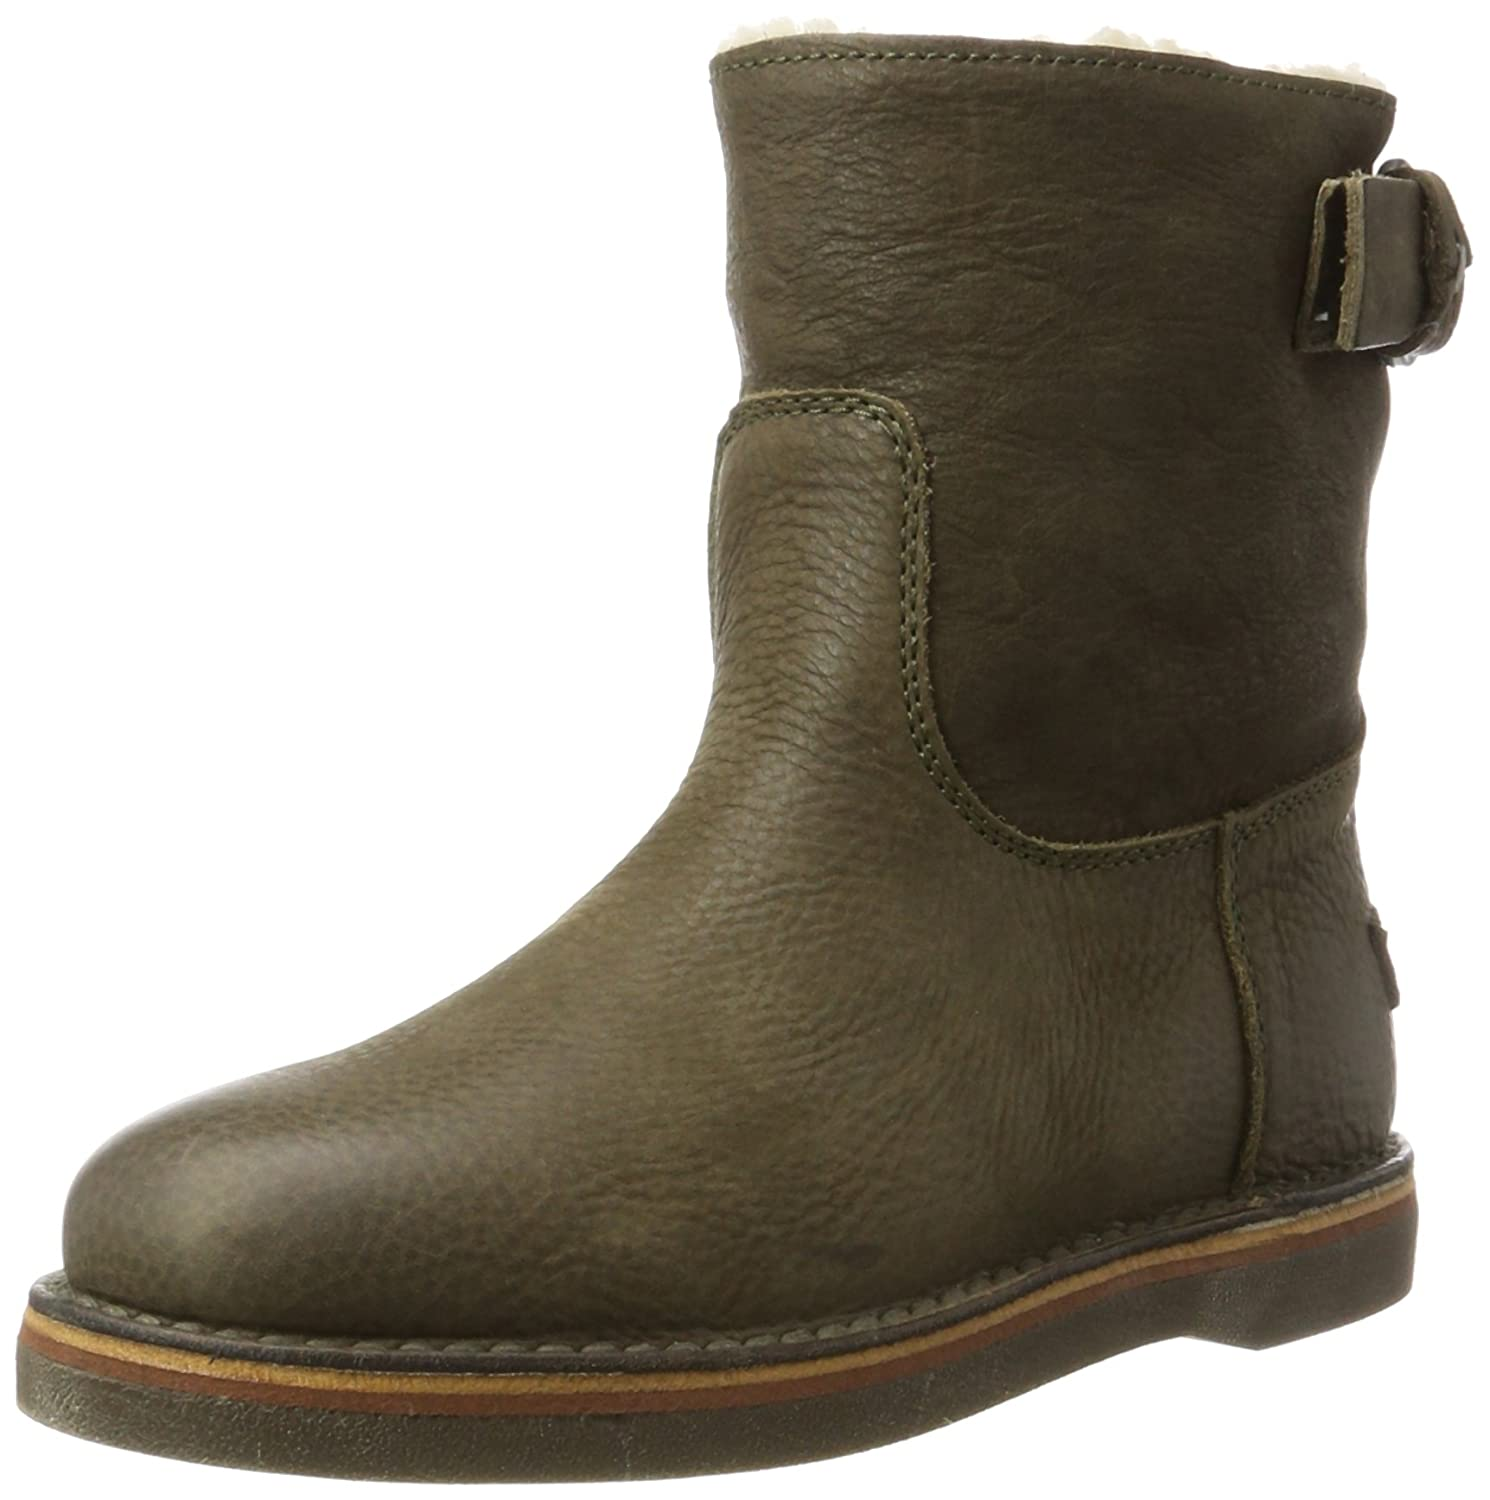 Shabbies Enfiler Amsterdam Bottes Brown) à Enfiler Femme Braun (Olive B000OLXDUO Brown) 6379291 - epictionpvp.space